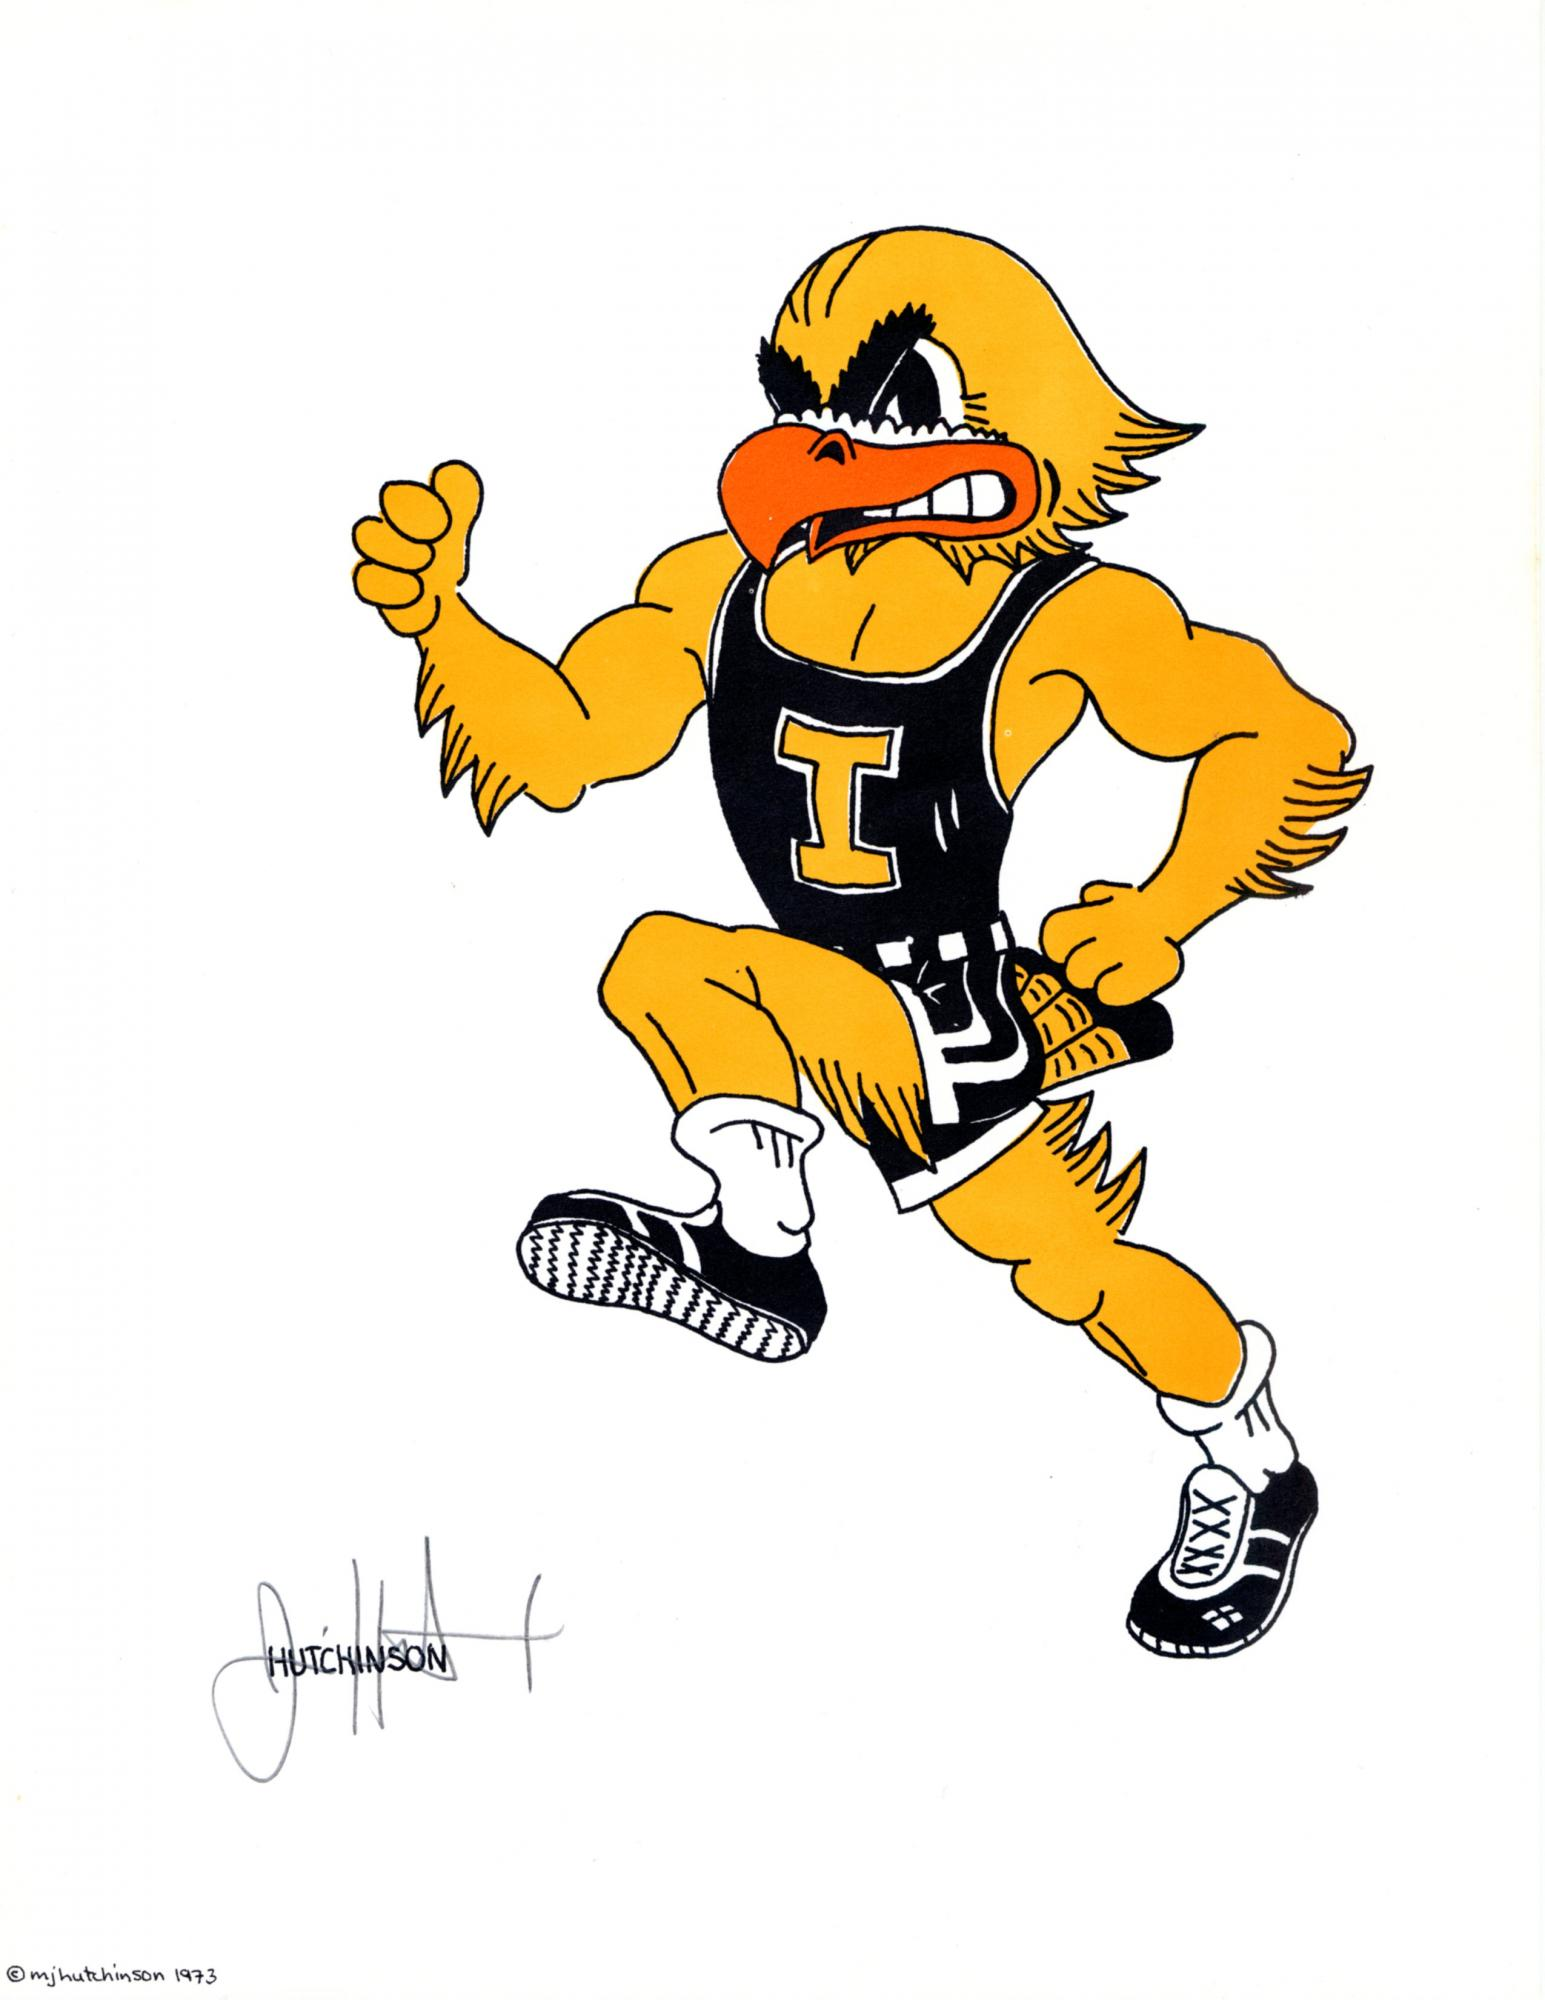 Old Gold: Wishing Herky a happy birthday.